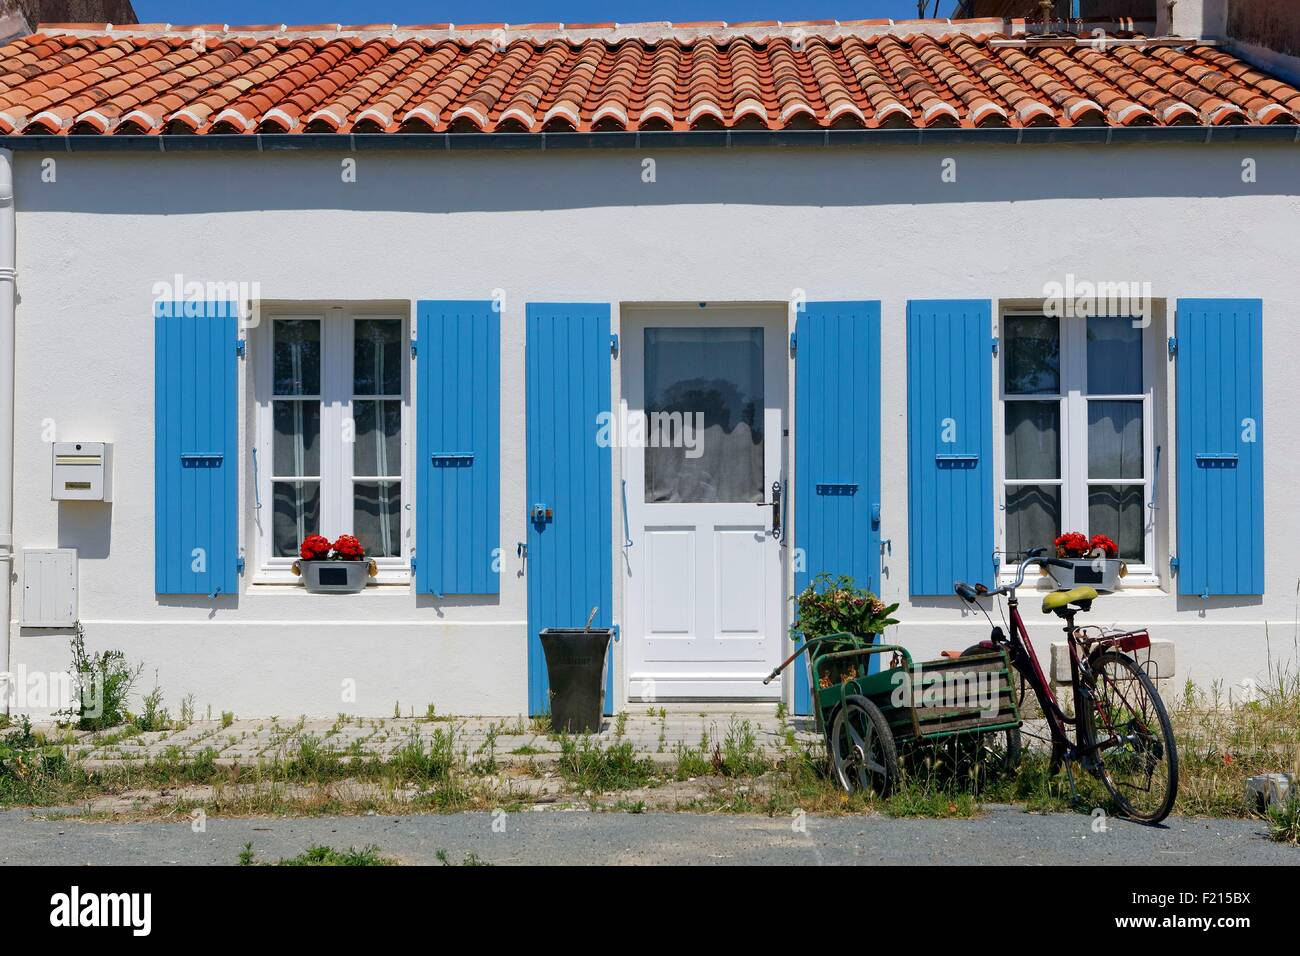 France, Charente Maritime, Ile d'Aix, labeled stone and water villages, house - Stock Image